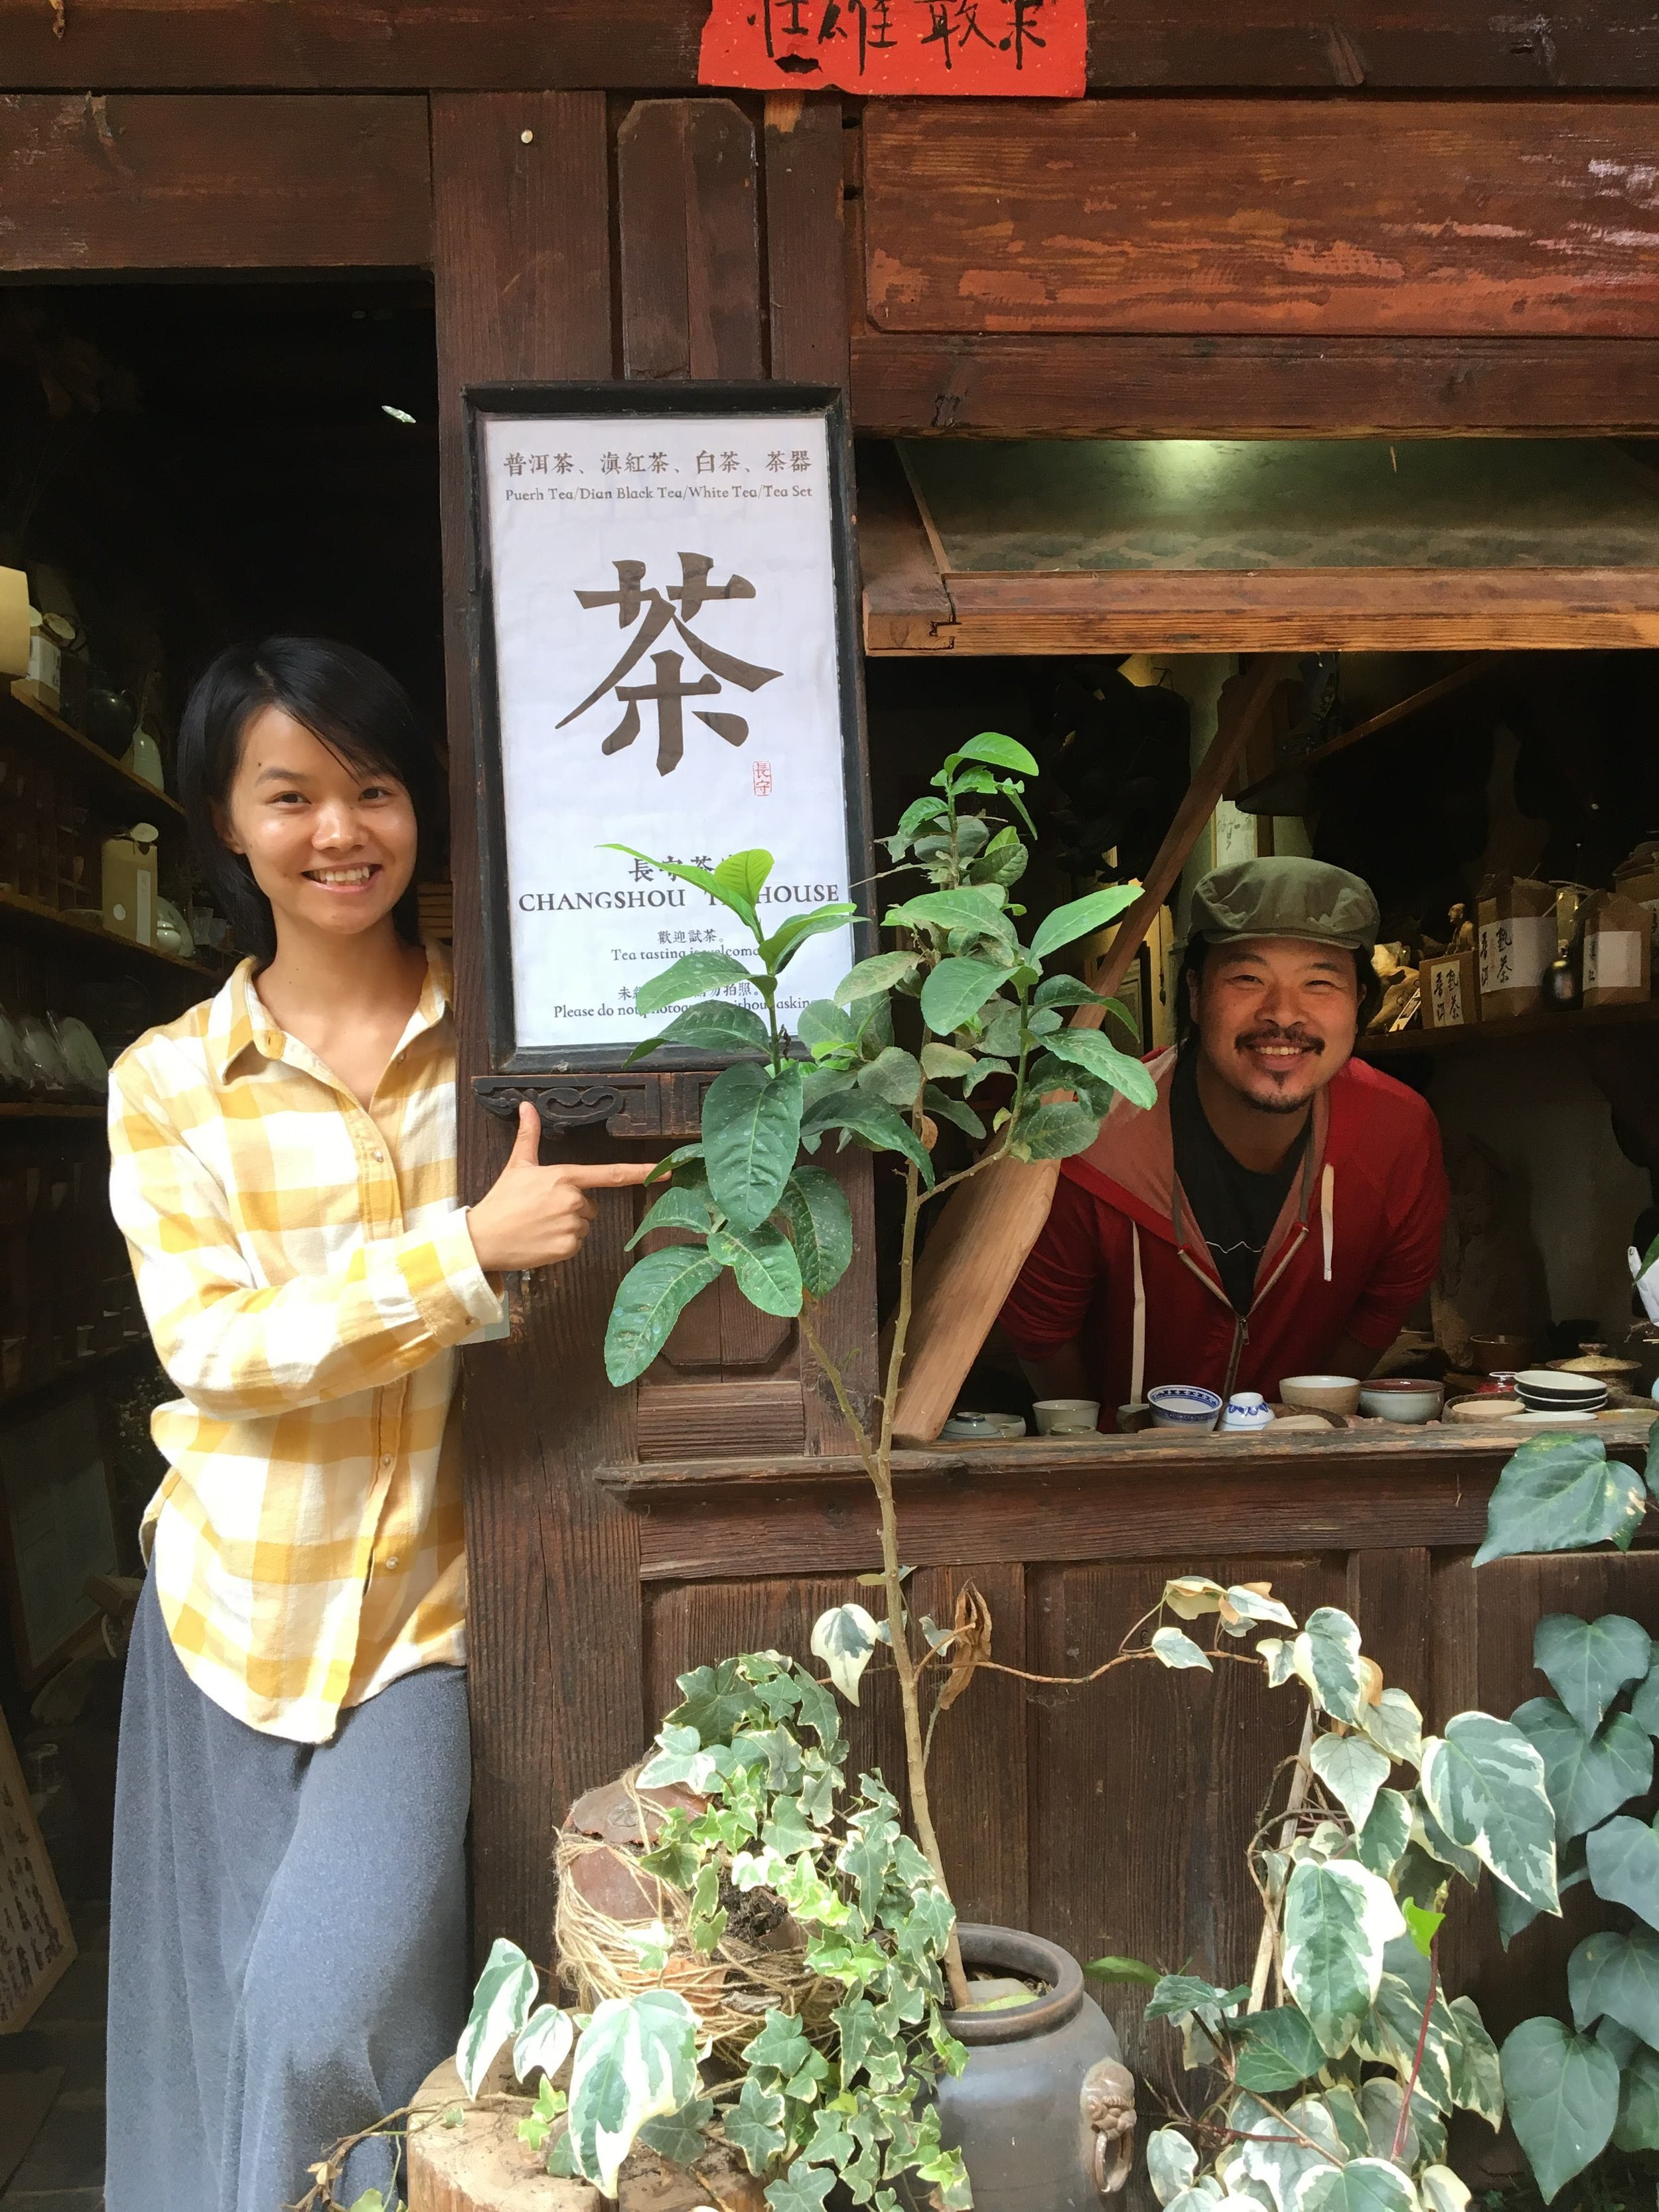 I asked this friendly looking guy for a suggestion of where to eat in Shaxi, China and he invited me to his tea shop, where he and his girlfriend taught me about green tea and we chatted about life. Check out their site about tea and mindfulness at  teaslowly.com